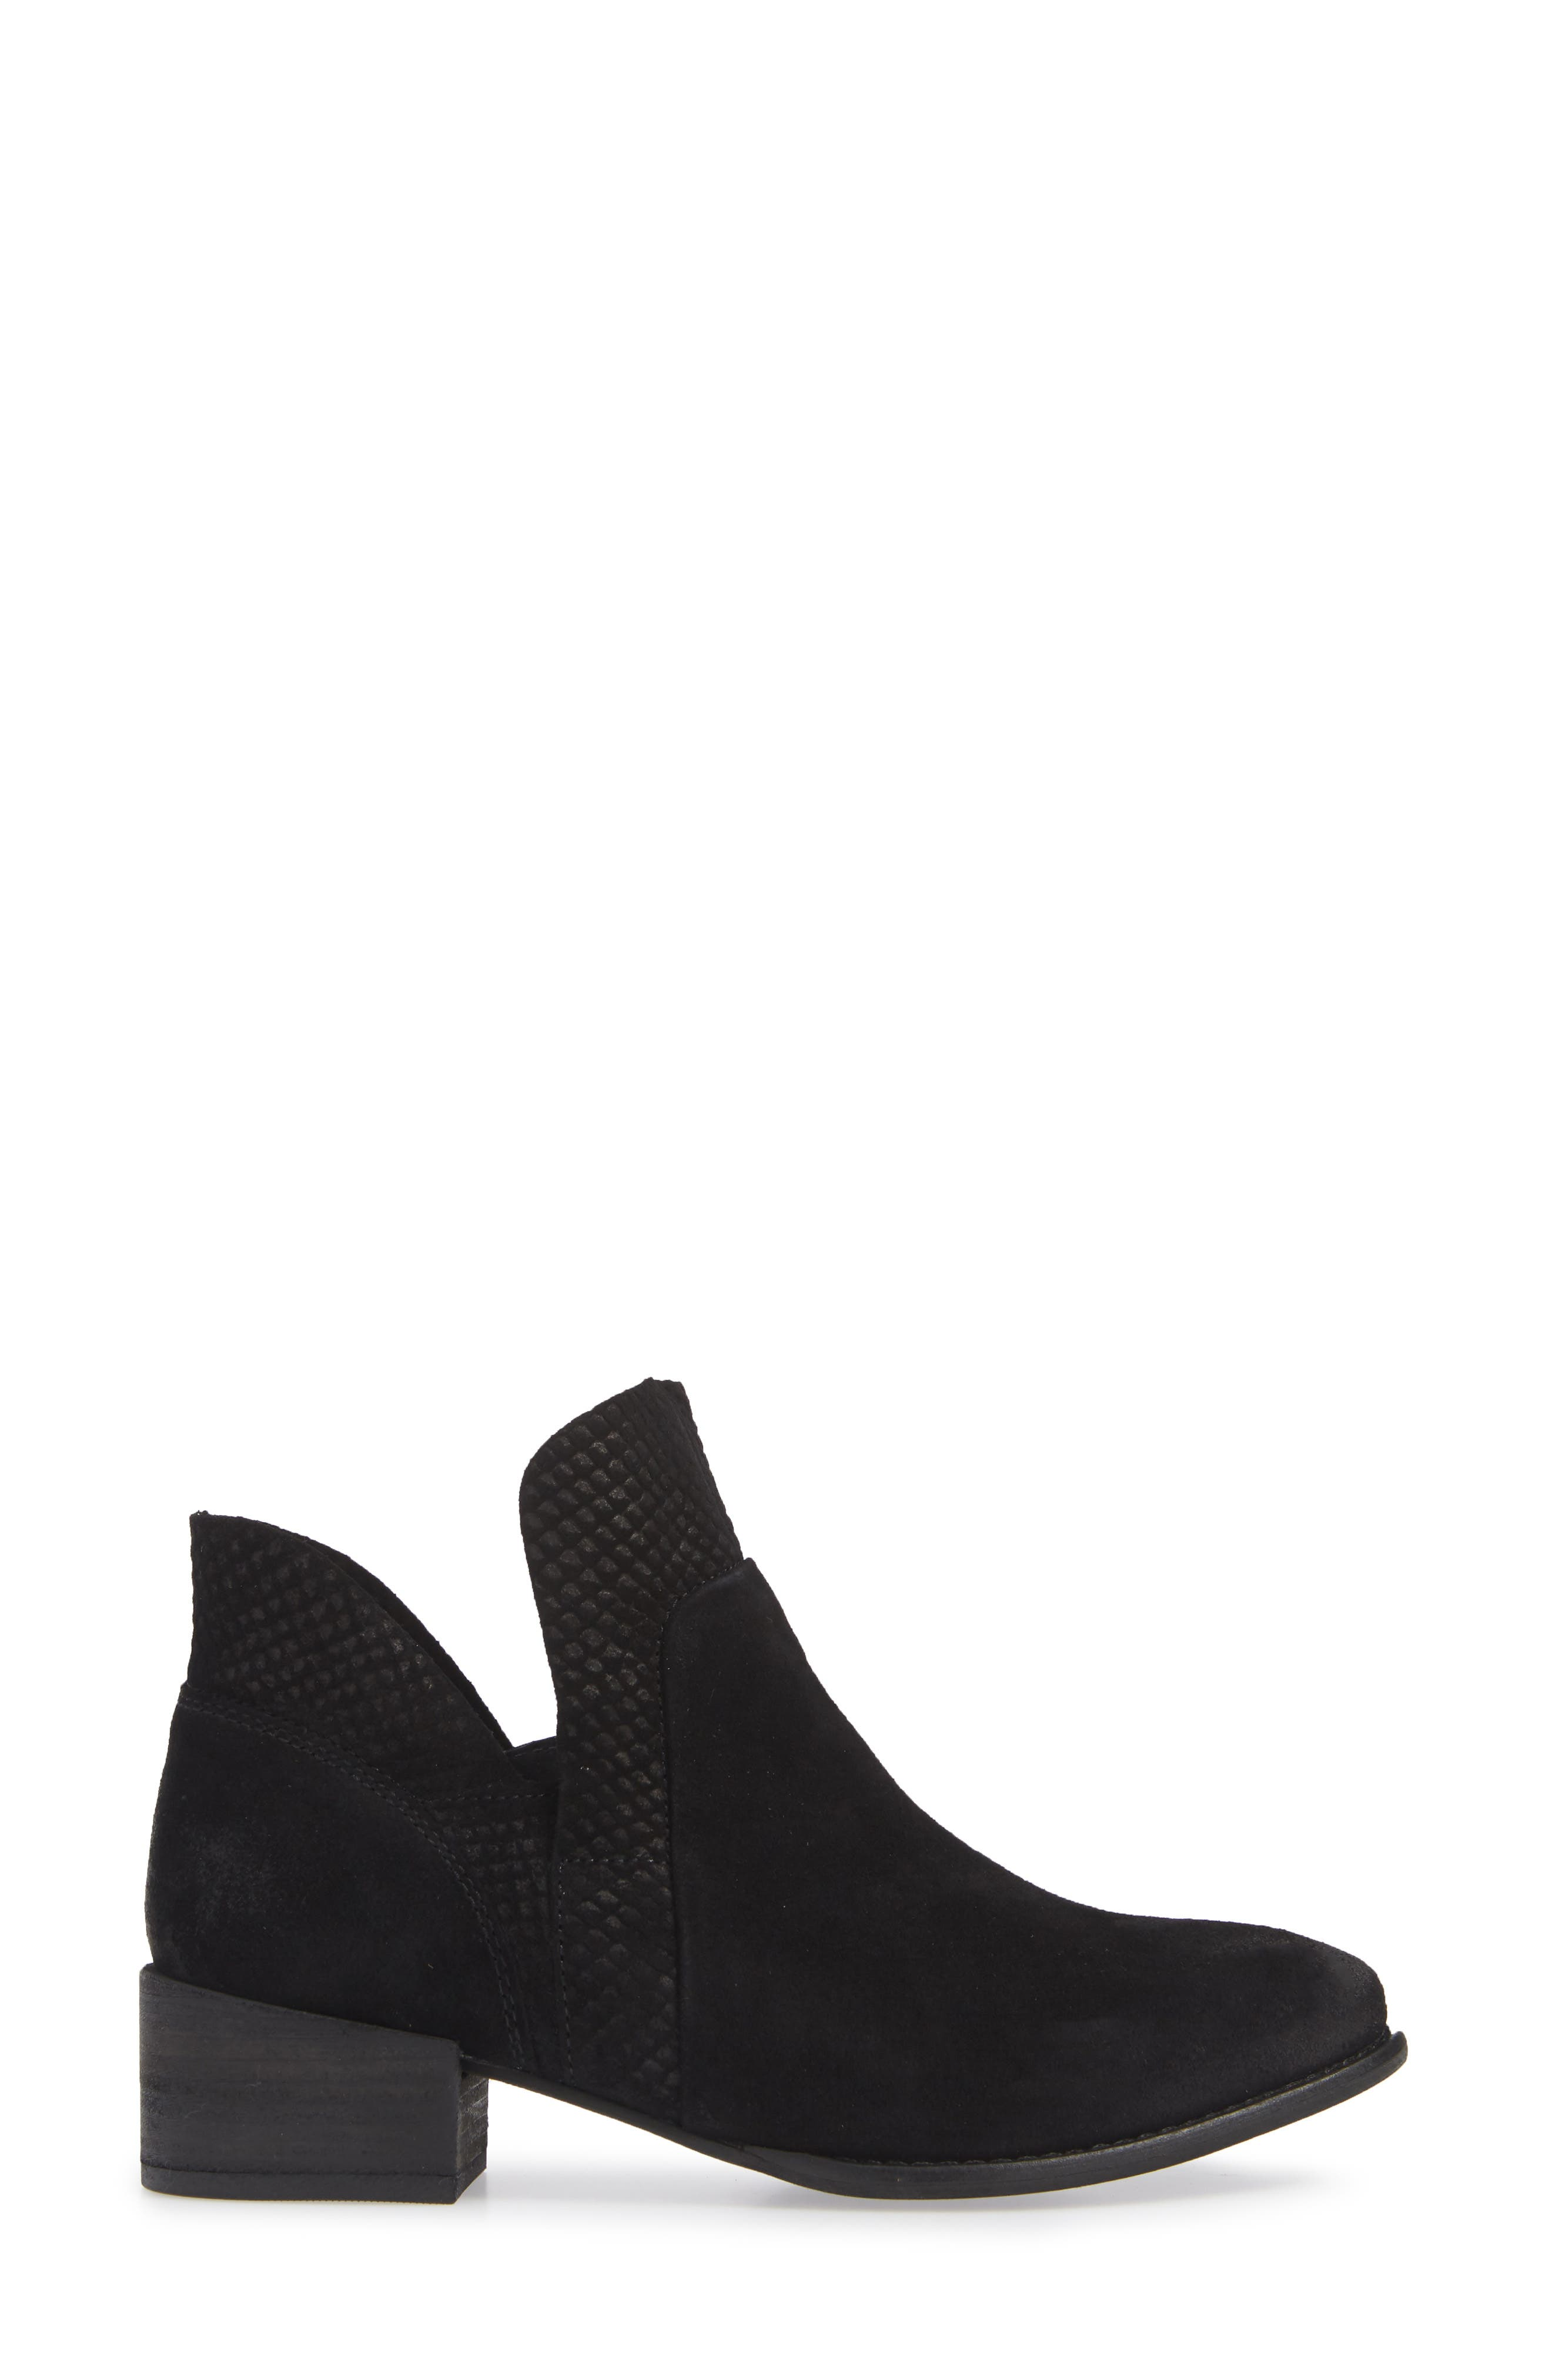 Score Bootie,                             Alternate thumbnail 3, color,                             BLACK SUEDE